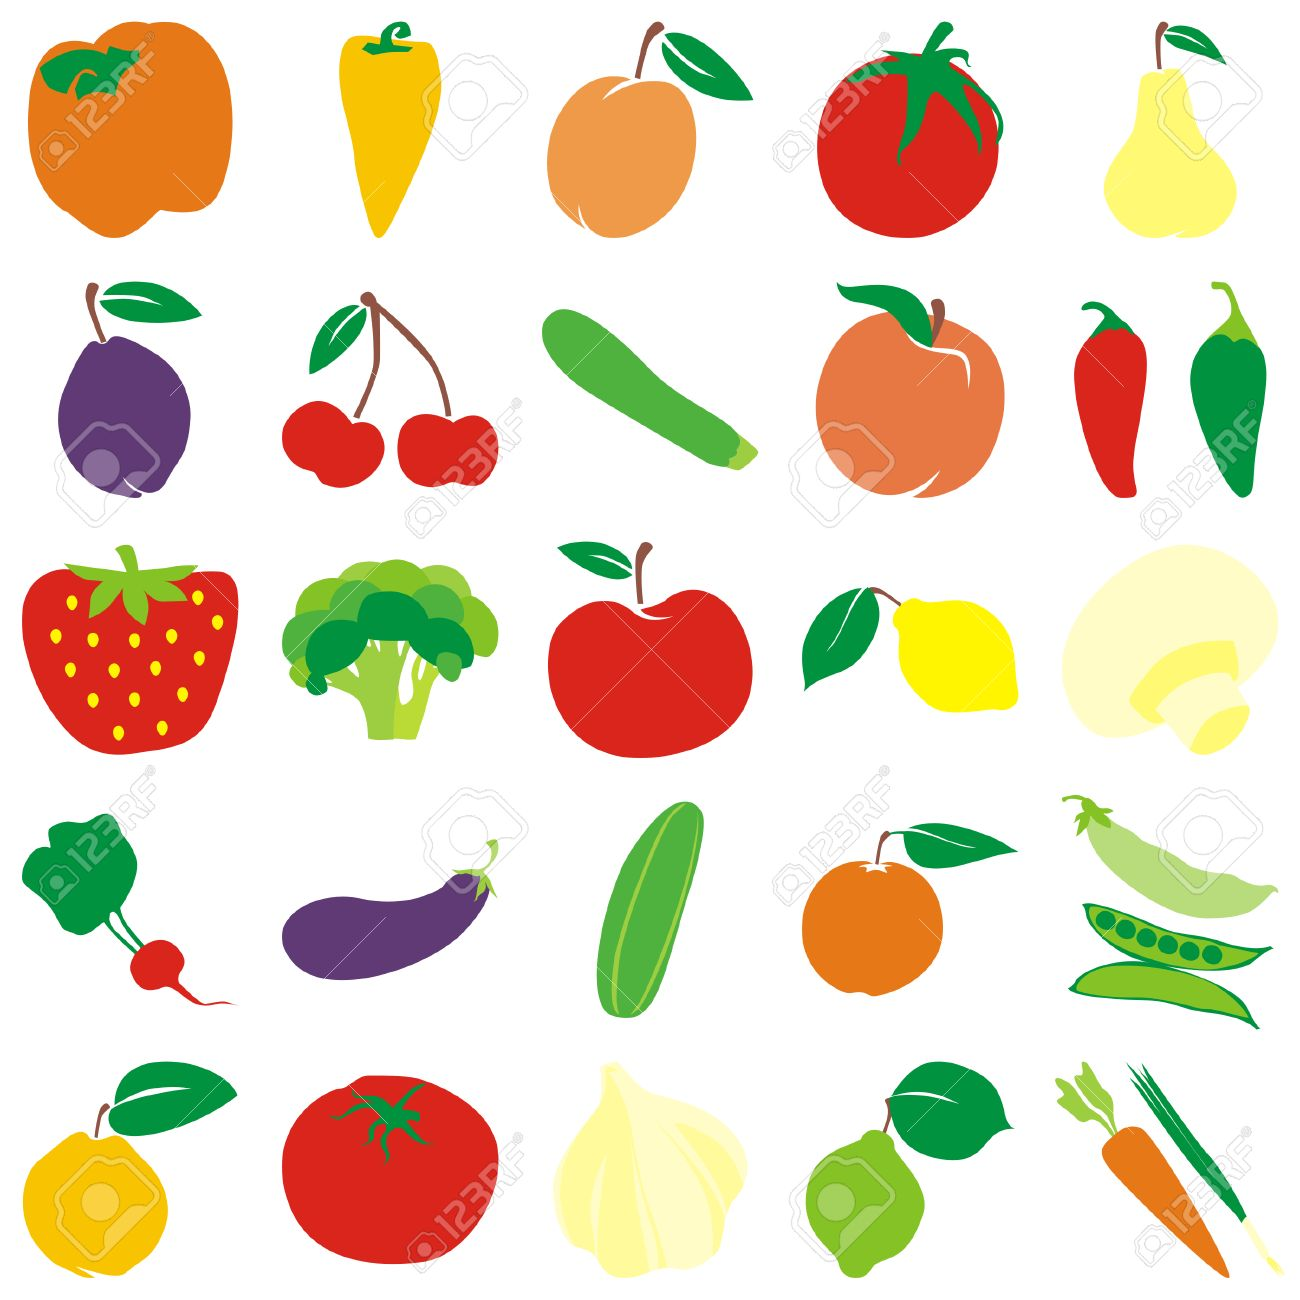 fully editable vector fruits and vegetables royalty free cliparts